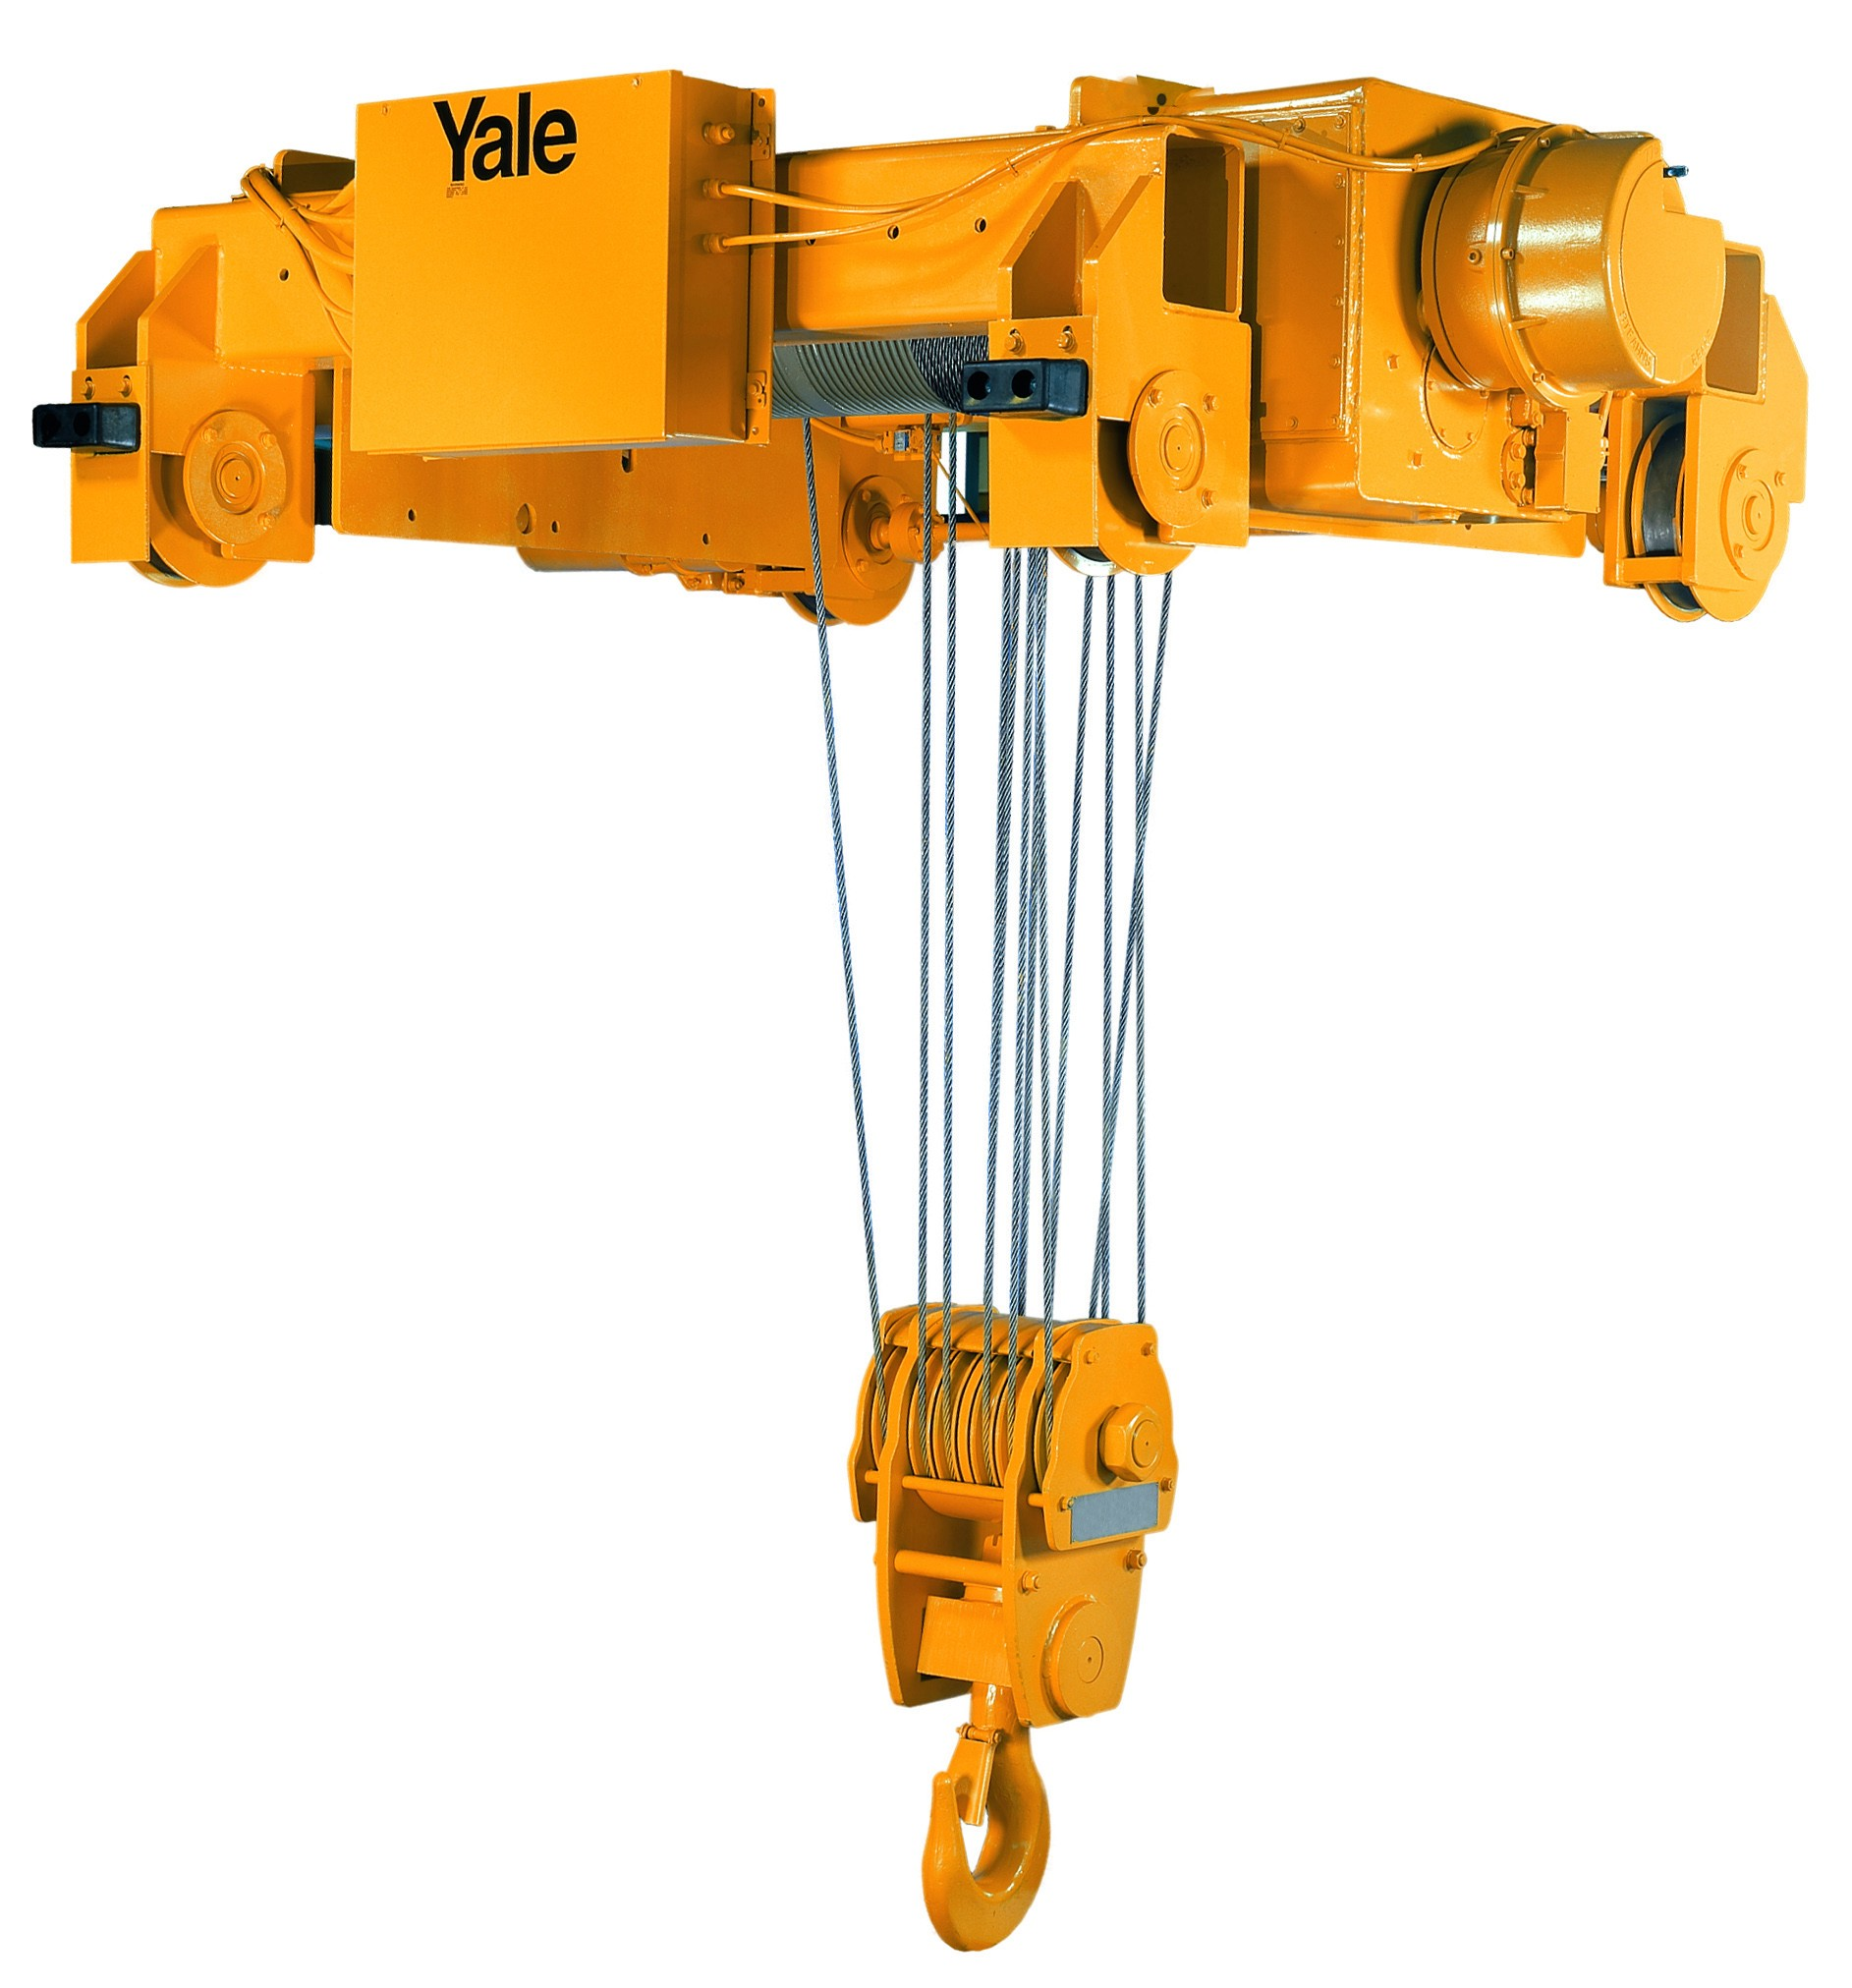 YALE - Cable King 25 Ton Electric Wire Rope Hoist (18fpm & 49' Lift Single Reeve)